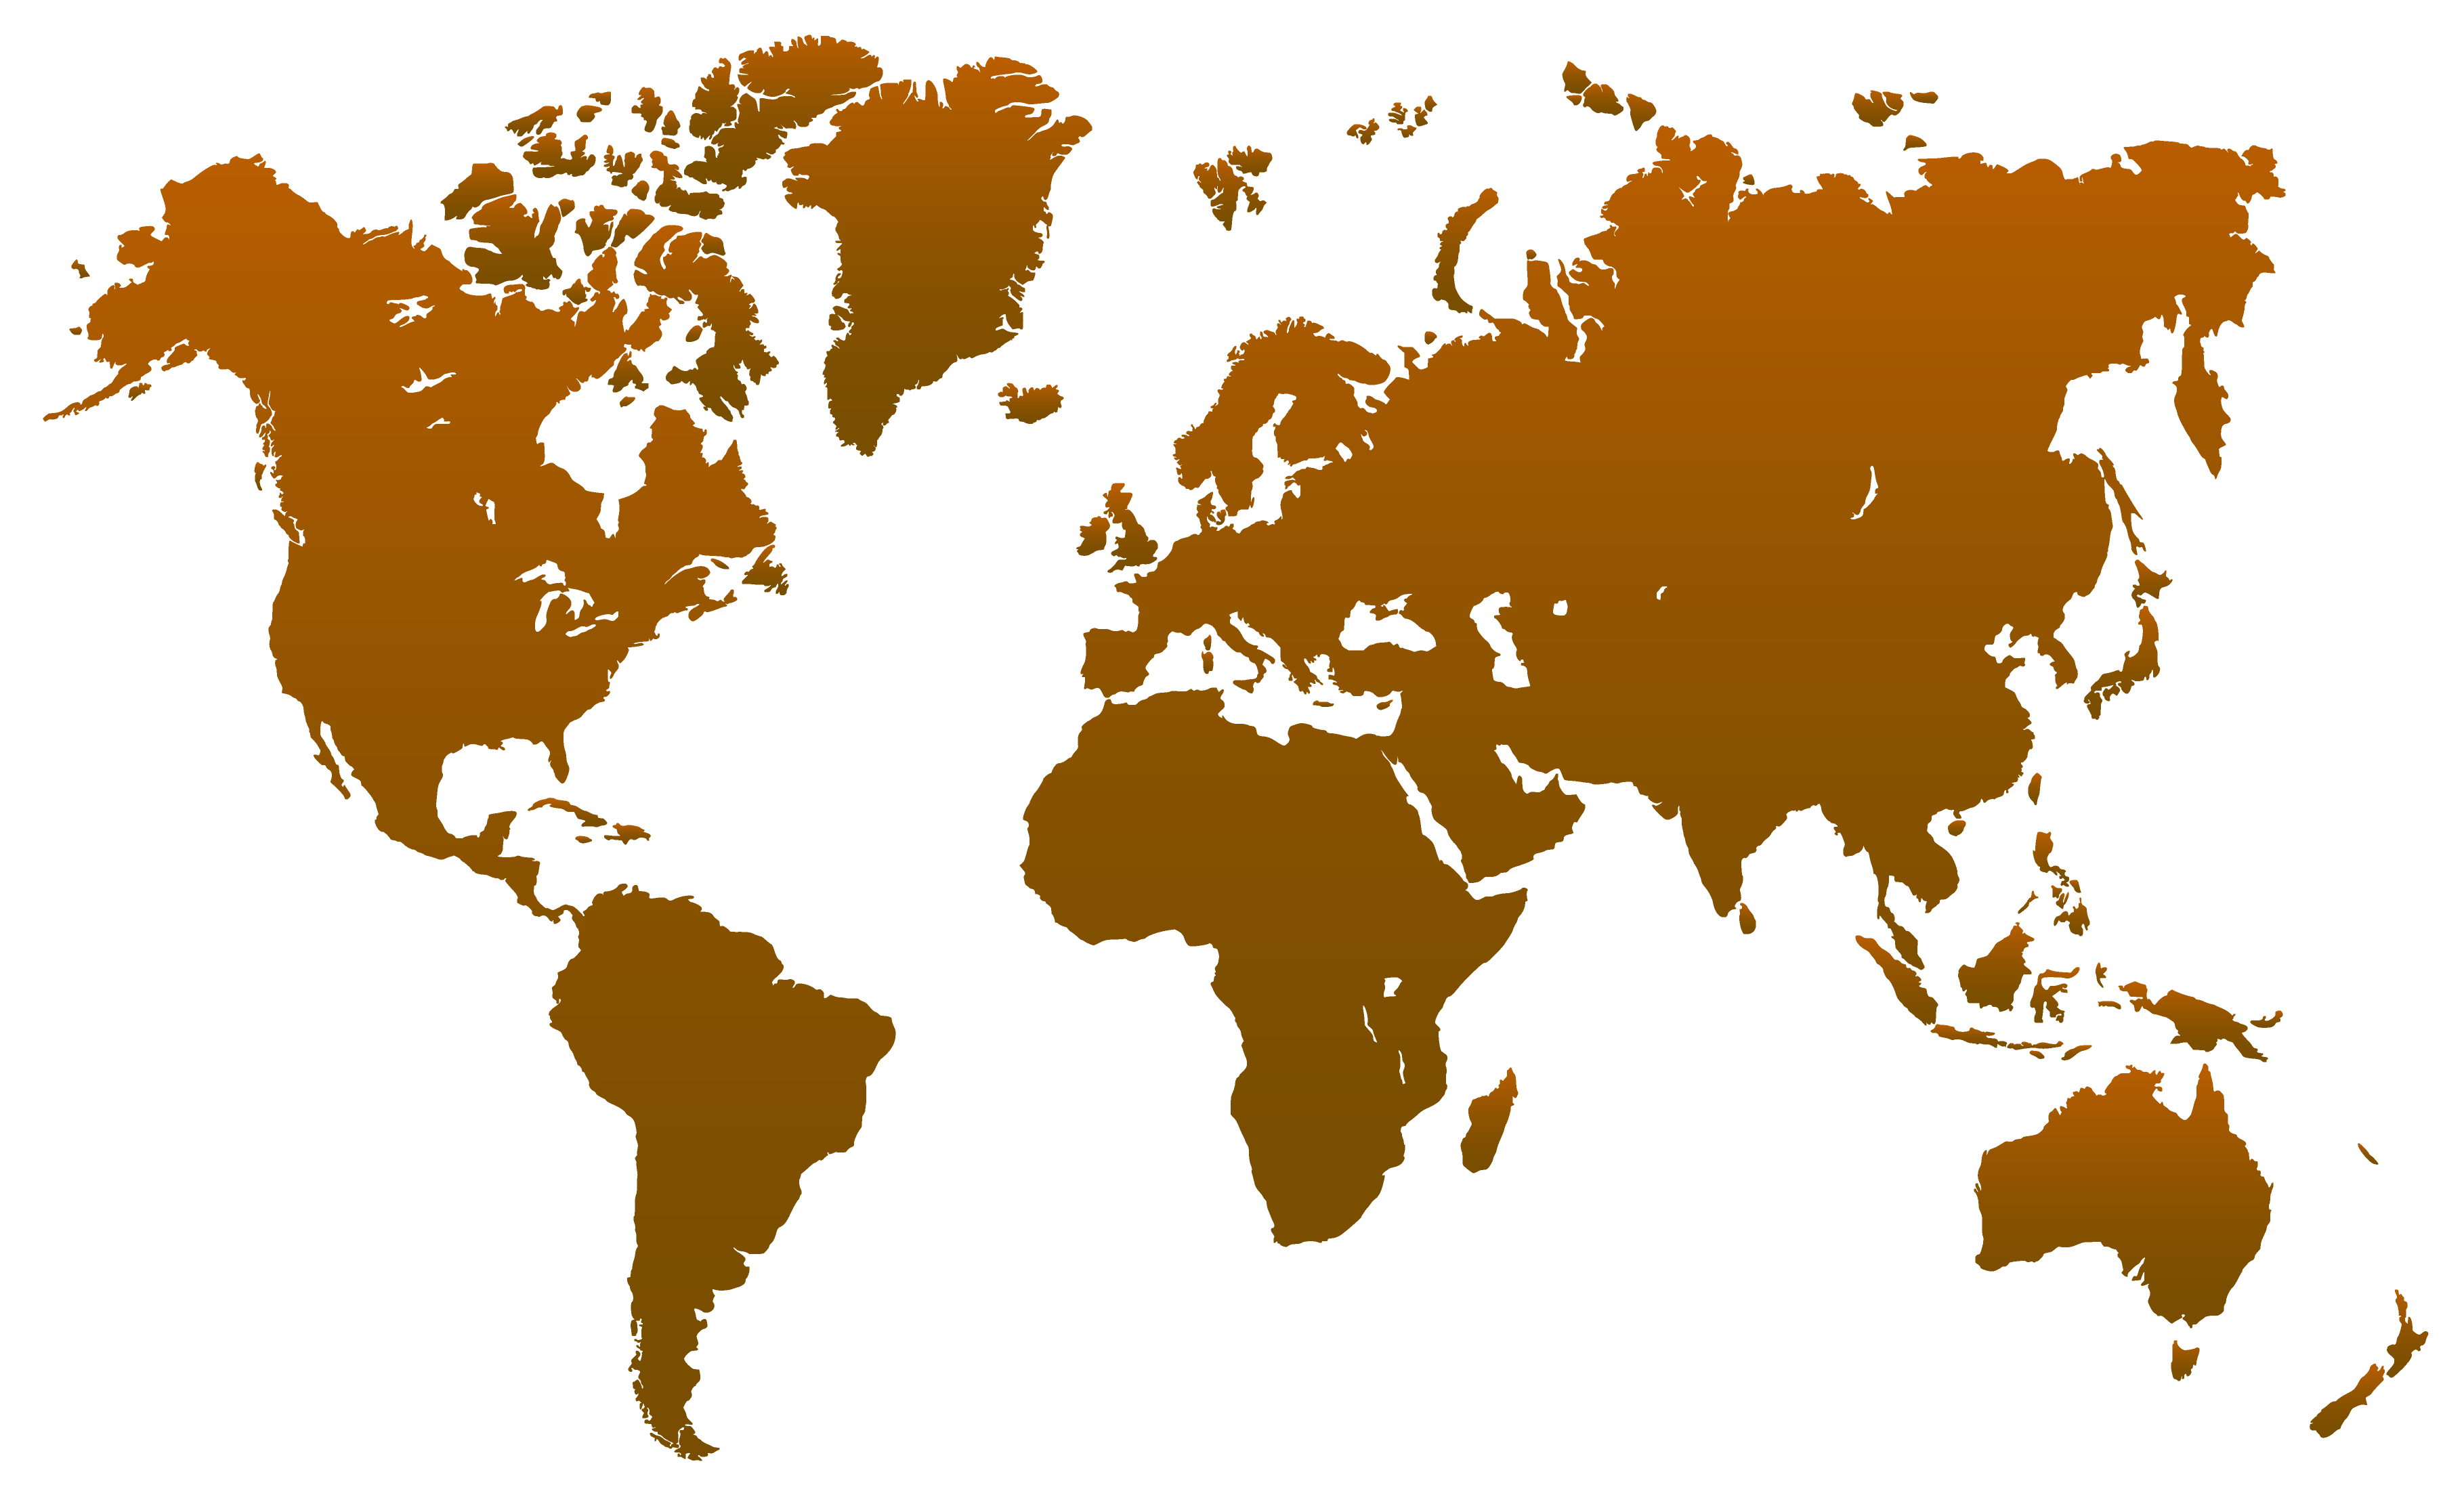 World map png. Transparent stickpng landmarks global